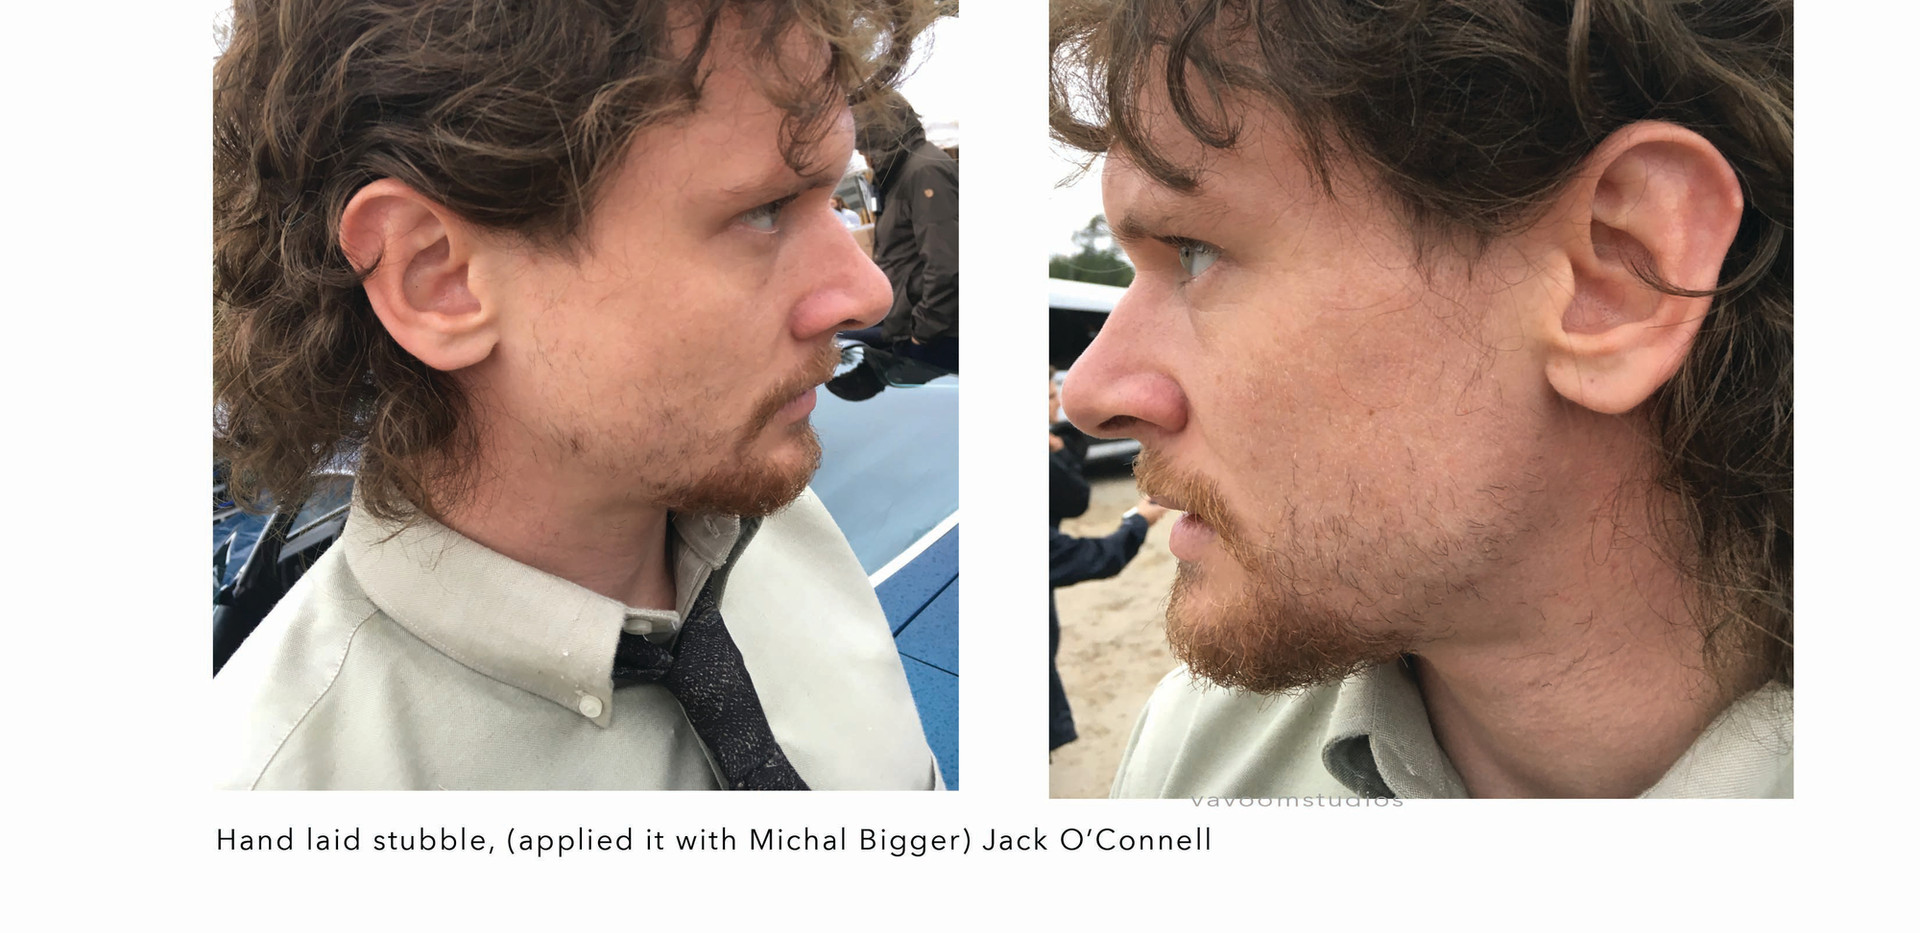 Jack O'Connel, Trial by Fire hand laid stubble with Michal Bigger